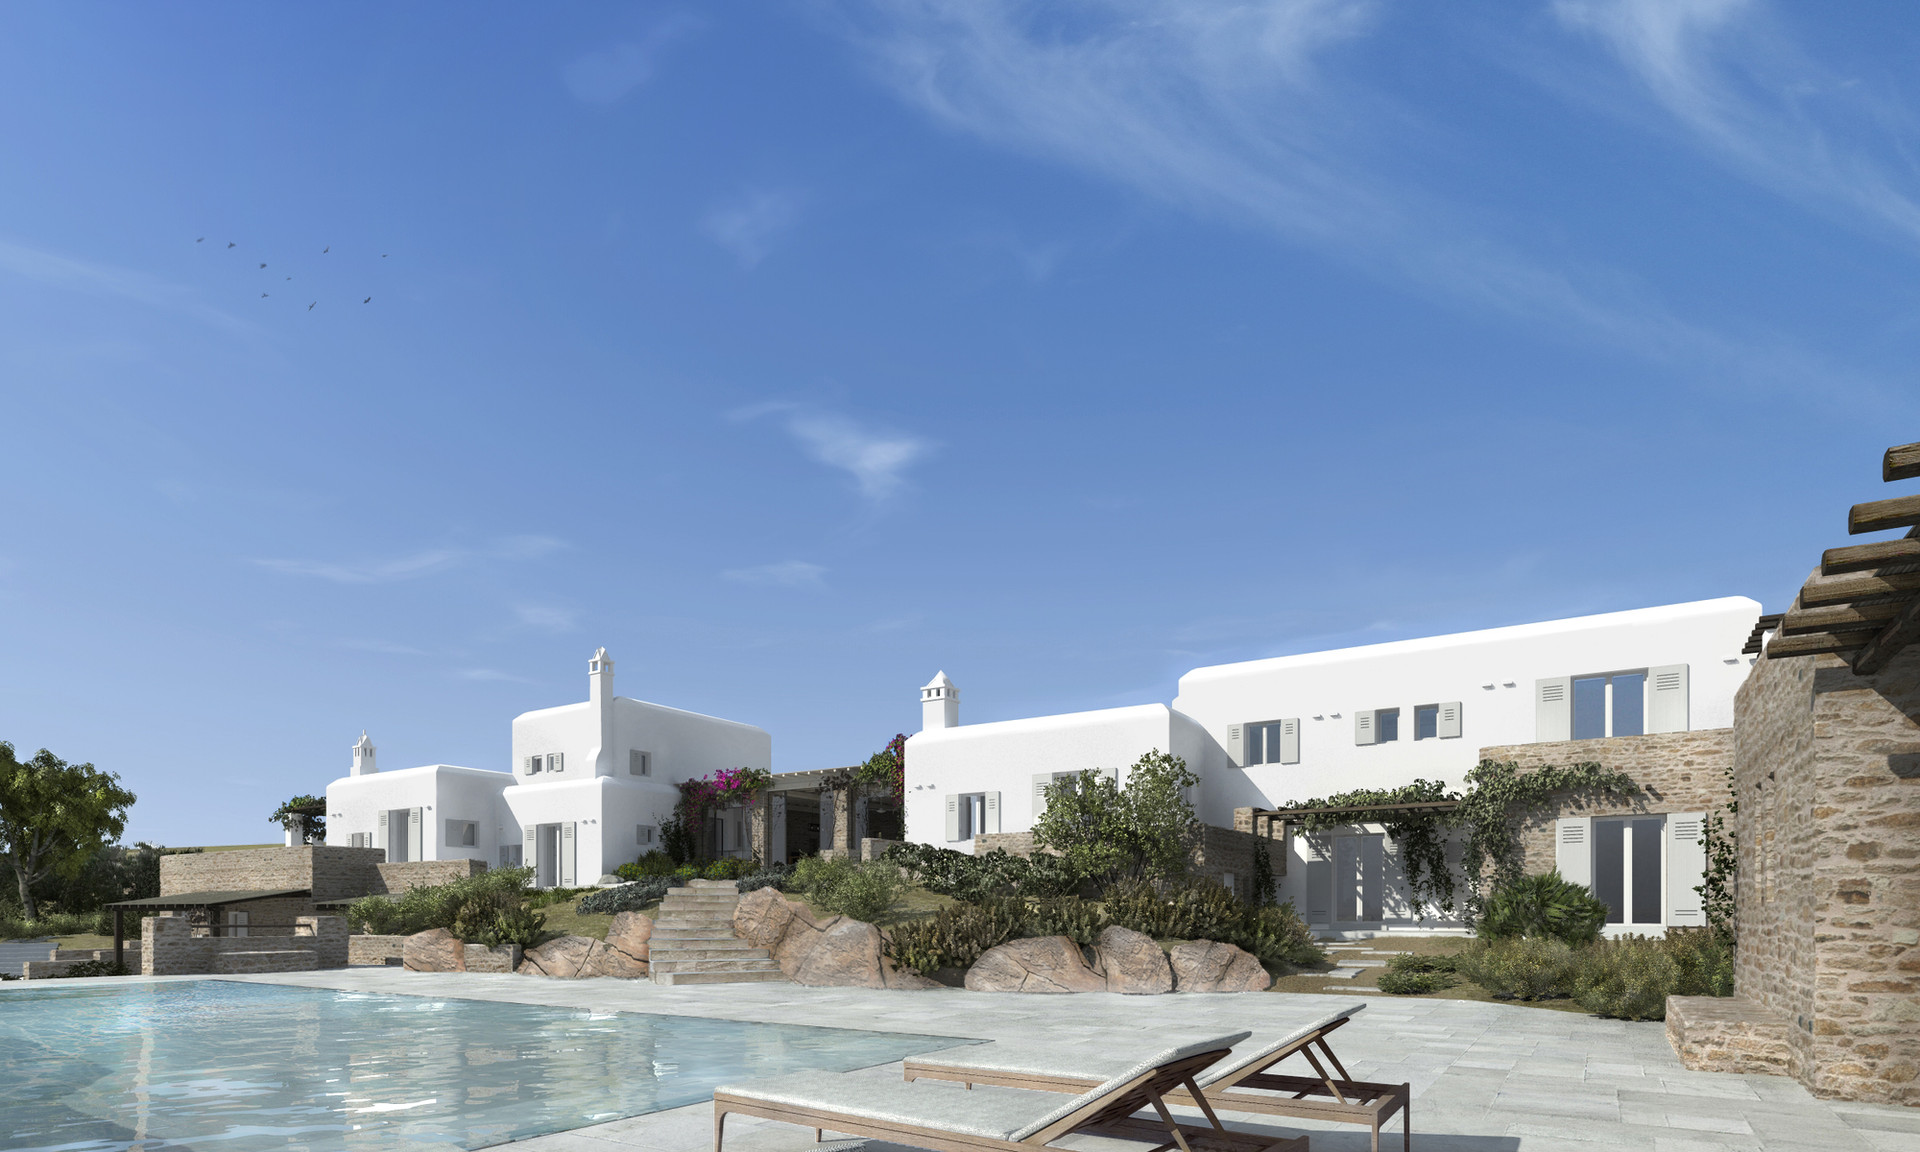 Rearrangement of residence in Mykonos, 2014